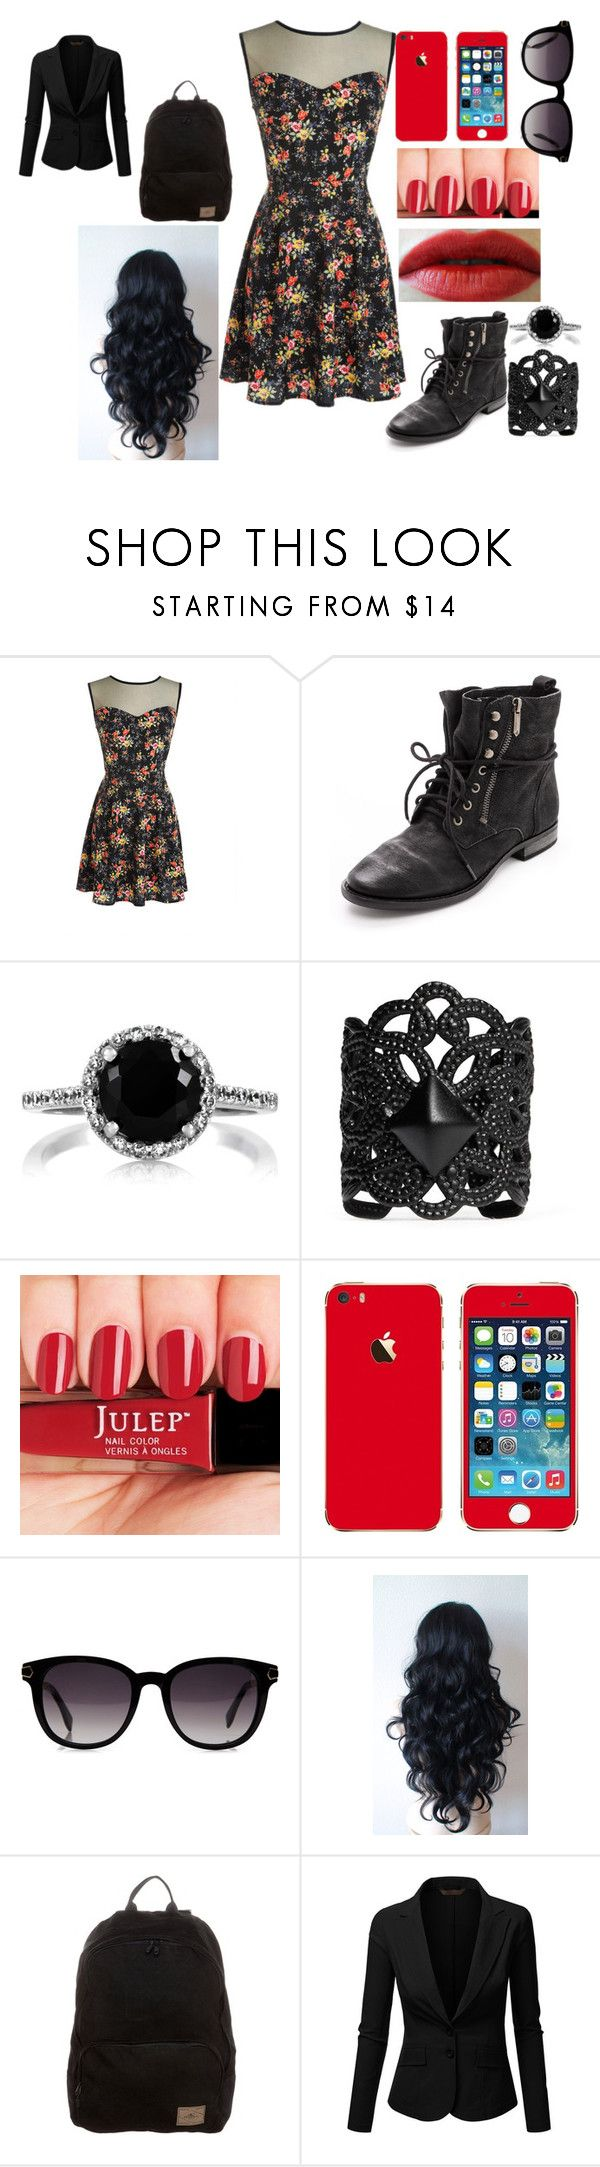 """Chapter 6: Naomi"" by kiara-fleming ❤ liked on Polyvore featuring Sam Edelman, Ela Stone, Fendi, O'Neill and J.TOMSON"